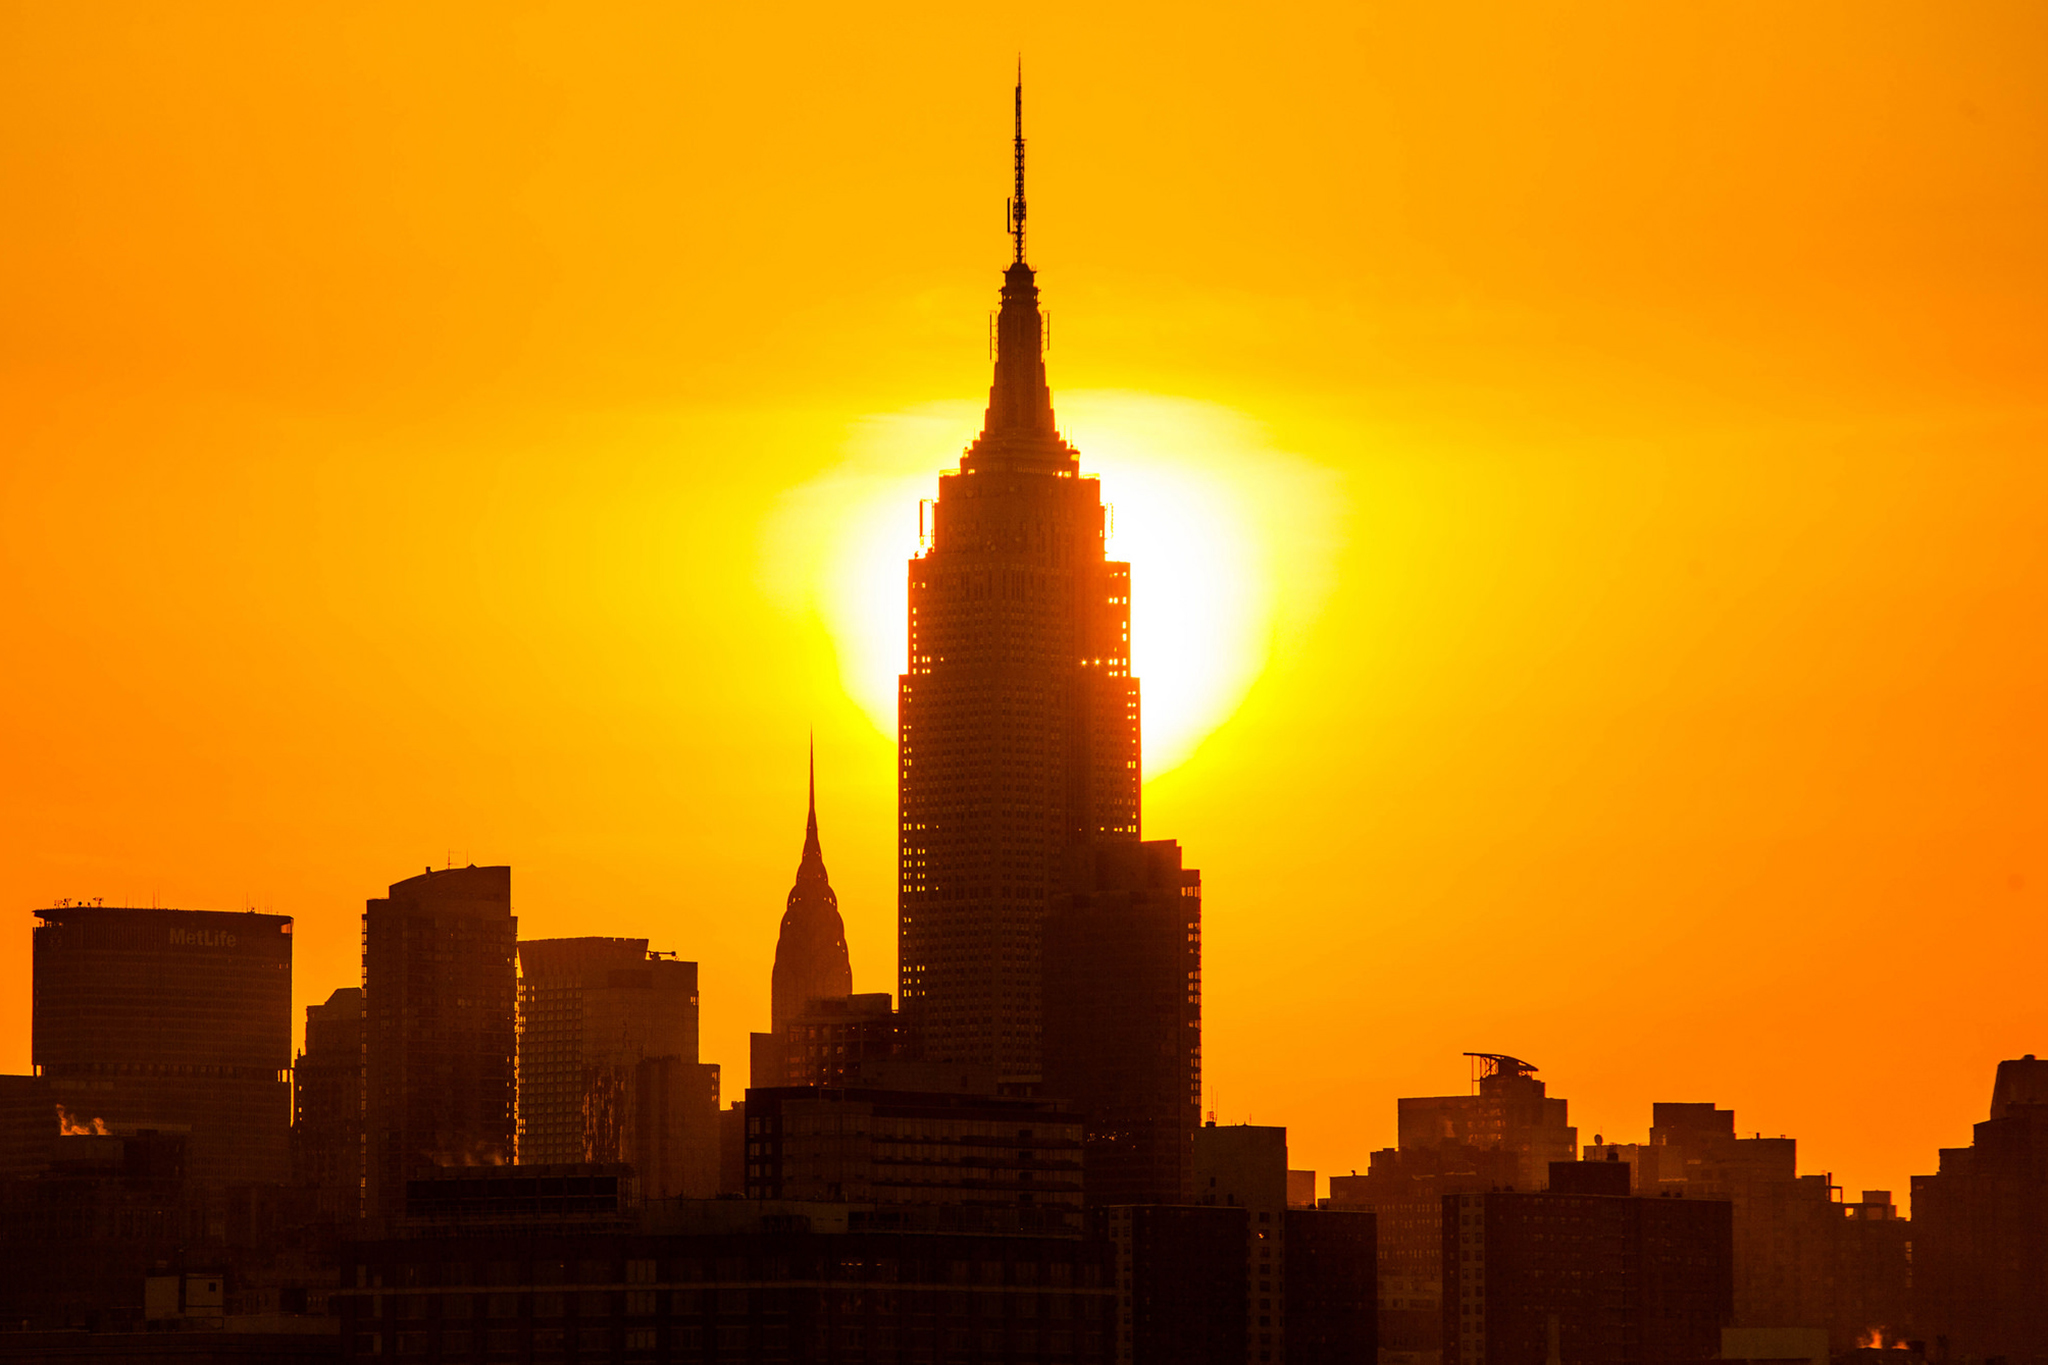 Starting this week, you can watch the sunrise from the Empire State Building